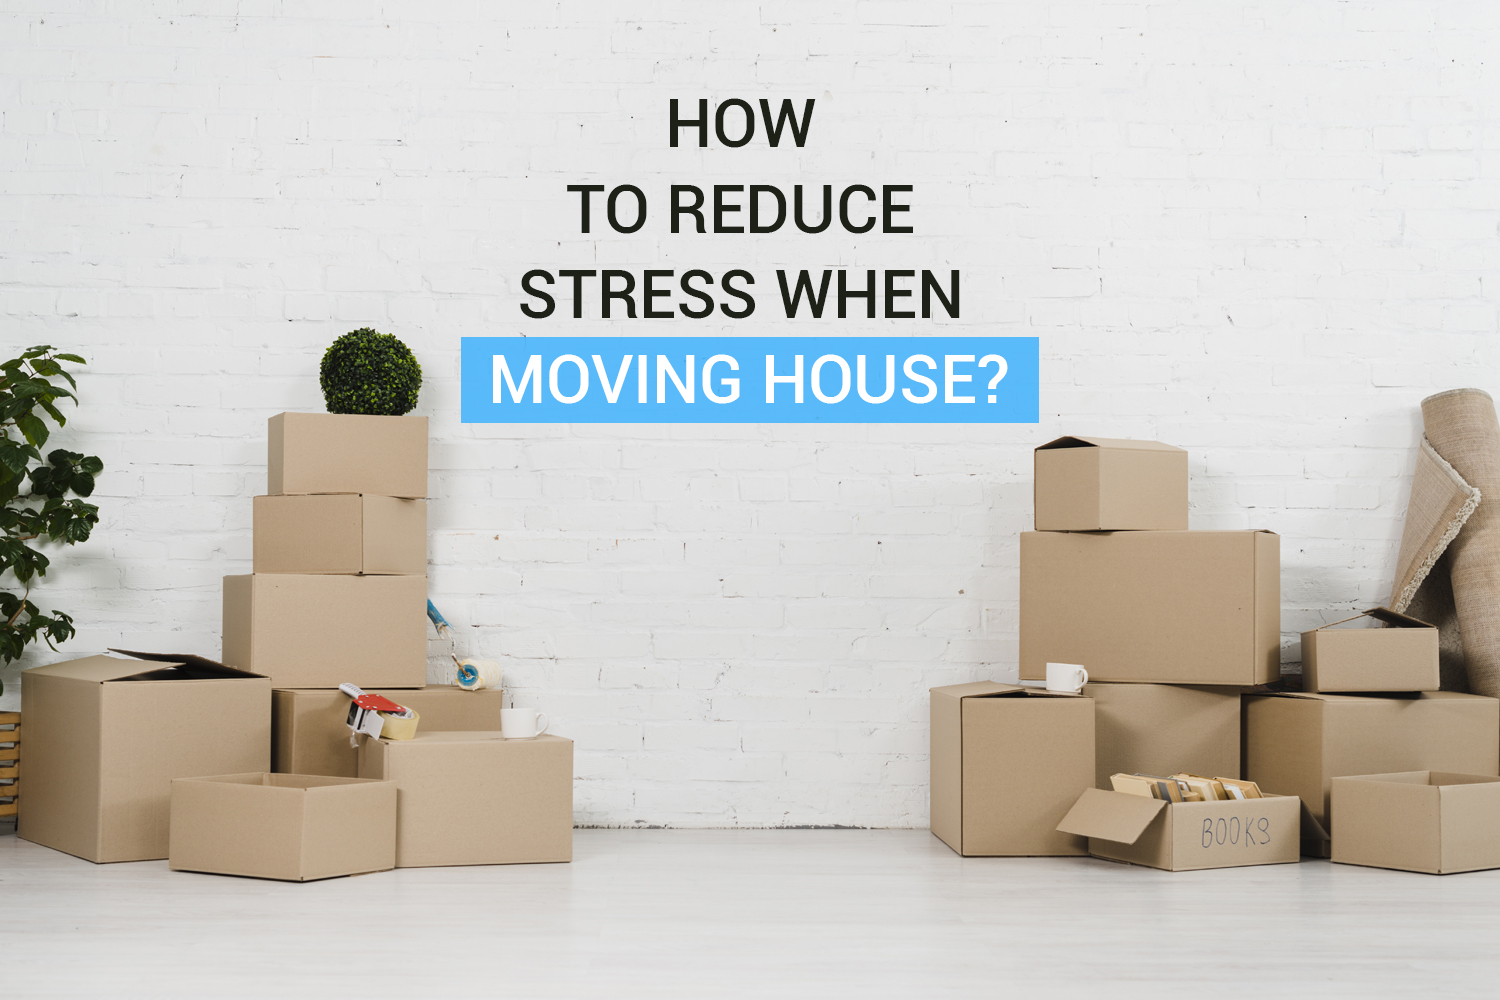 How to Reduce Stress When Moving House?